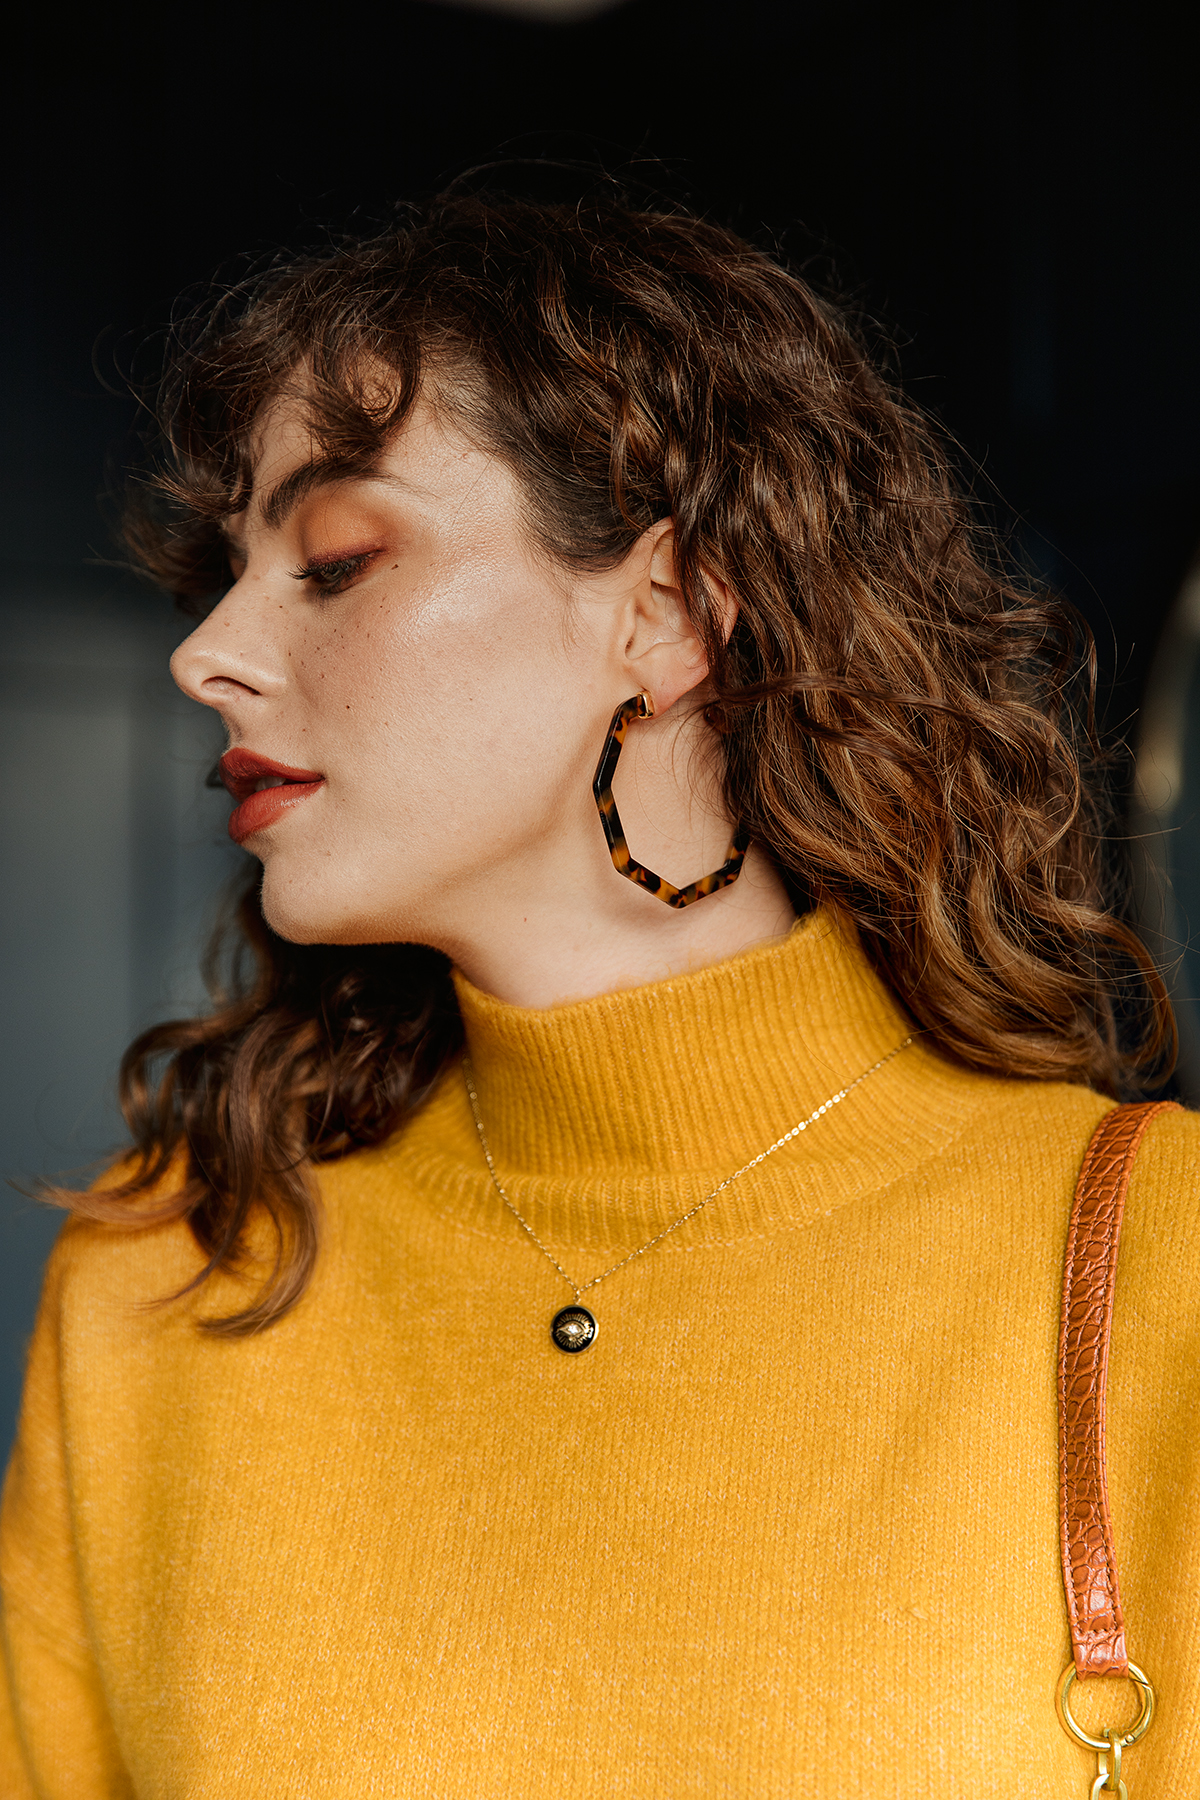 Sugar + Style fashion lookbook and e-com AW 2019. Close up detail of model in a yellow jumper. Shot by London based fashion photographer Ailera Stone